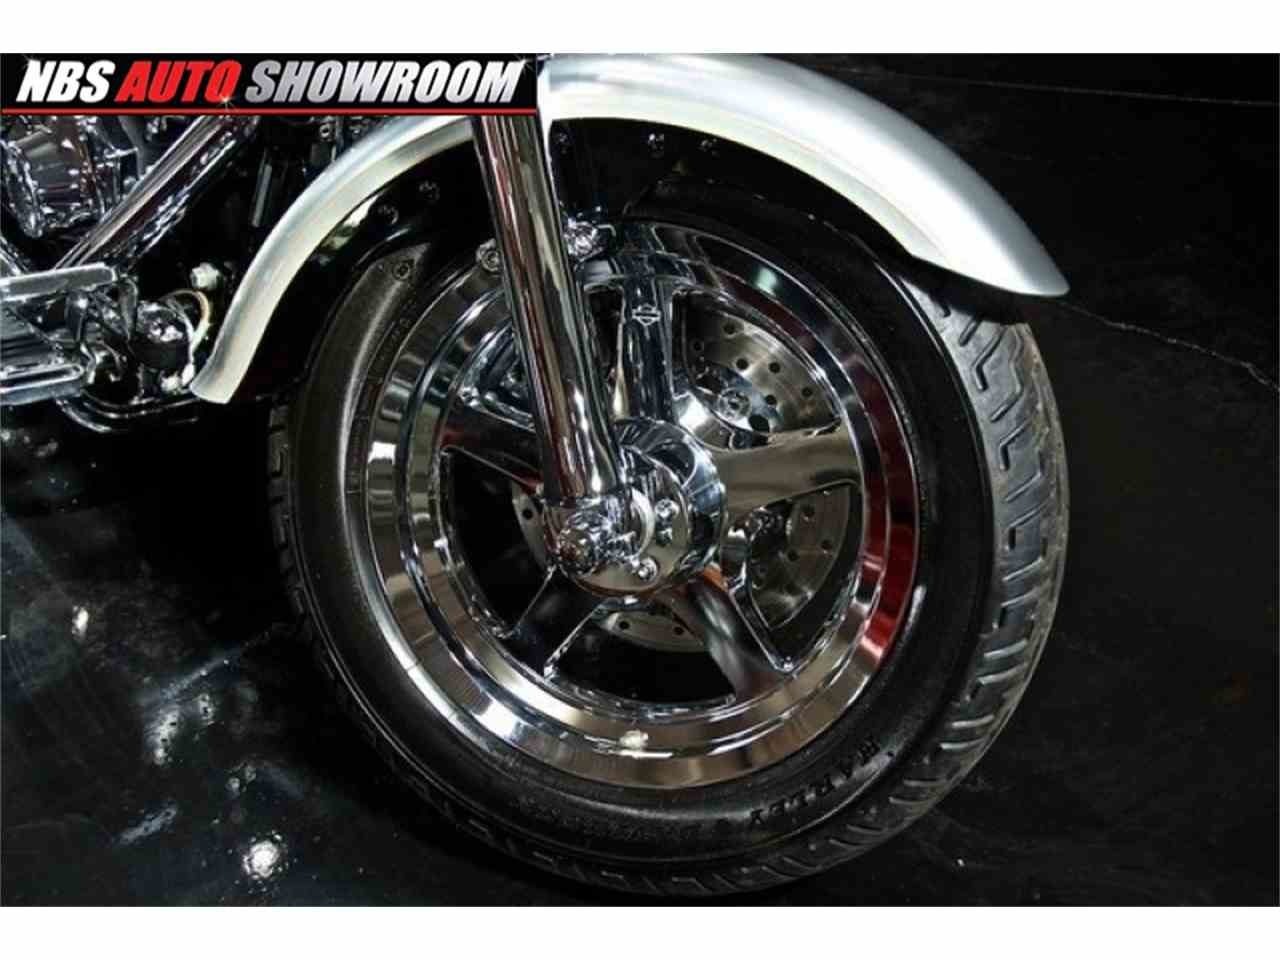 Large Picture of 2003 Harley Davidson SCREAMING EAGLE located in California Offered by NBS Auto Showroom - IVXN